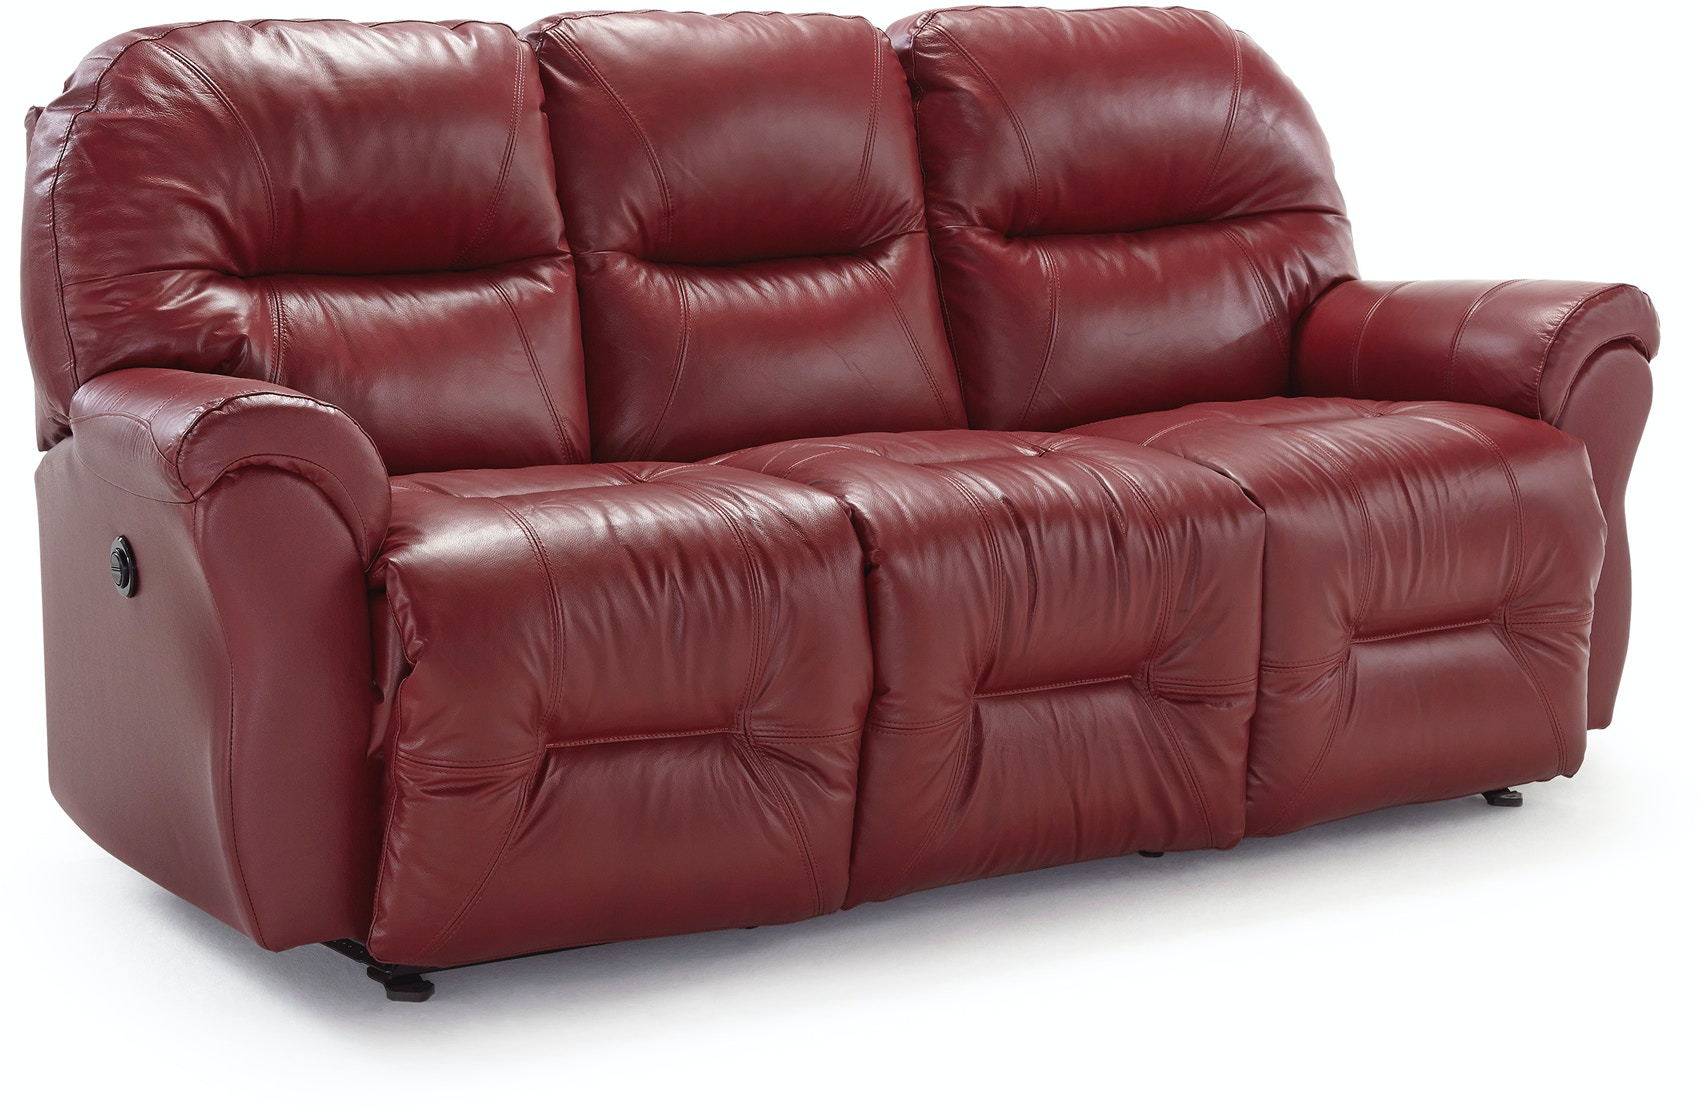 Best Home Furnishings Living Room Bo Power Reclining